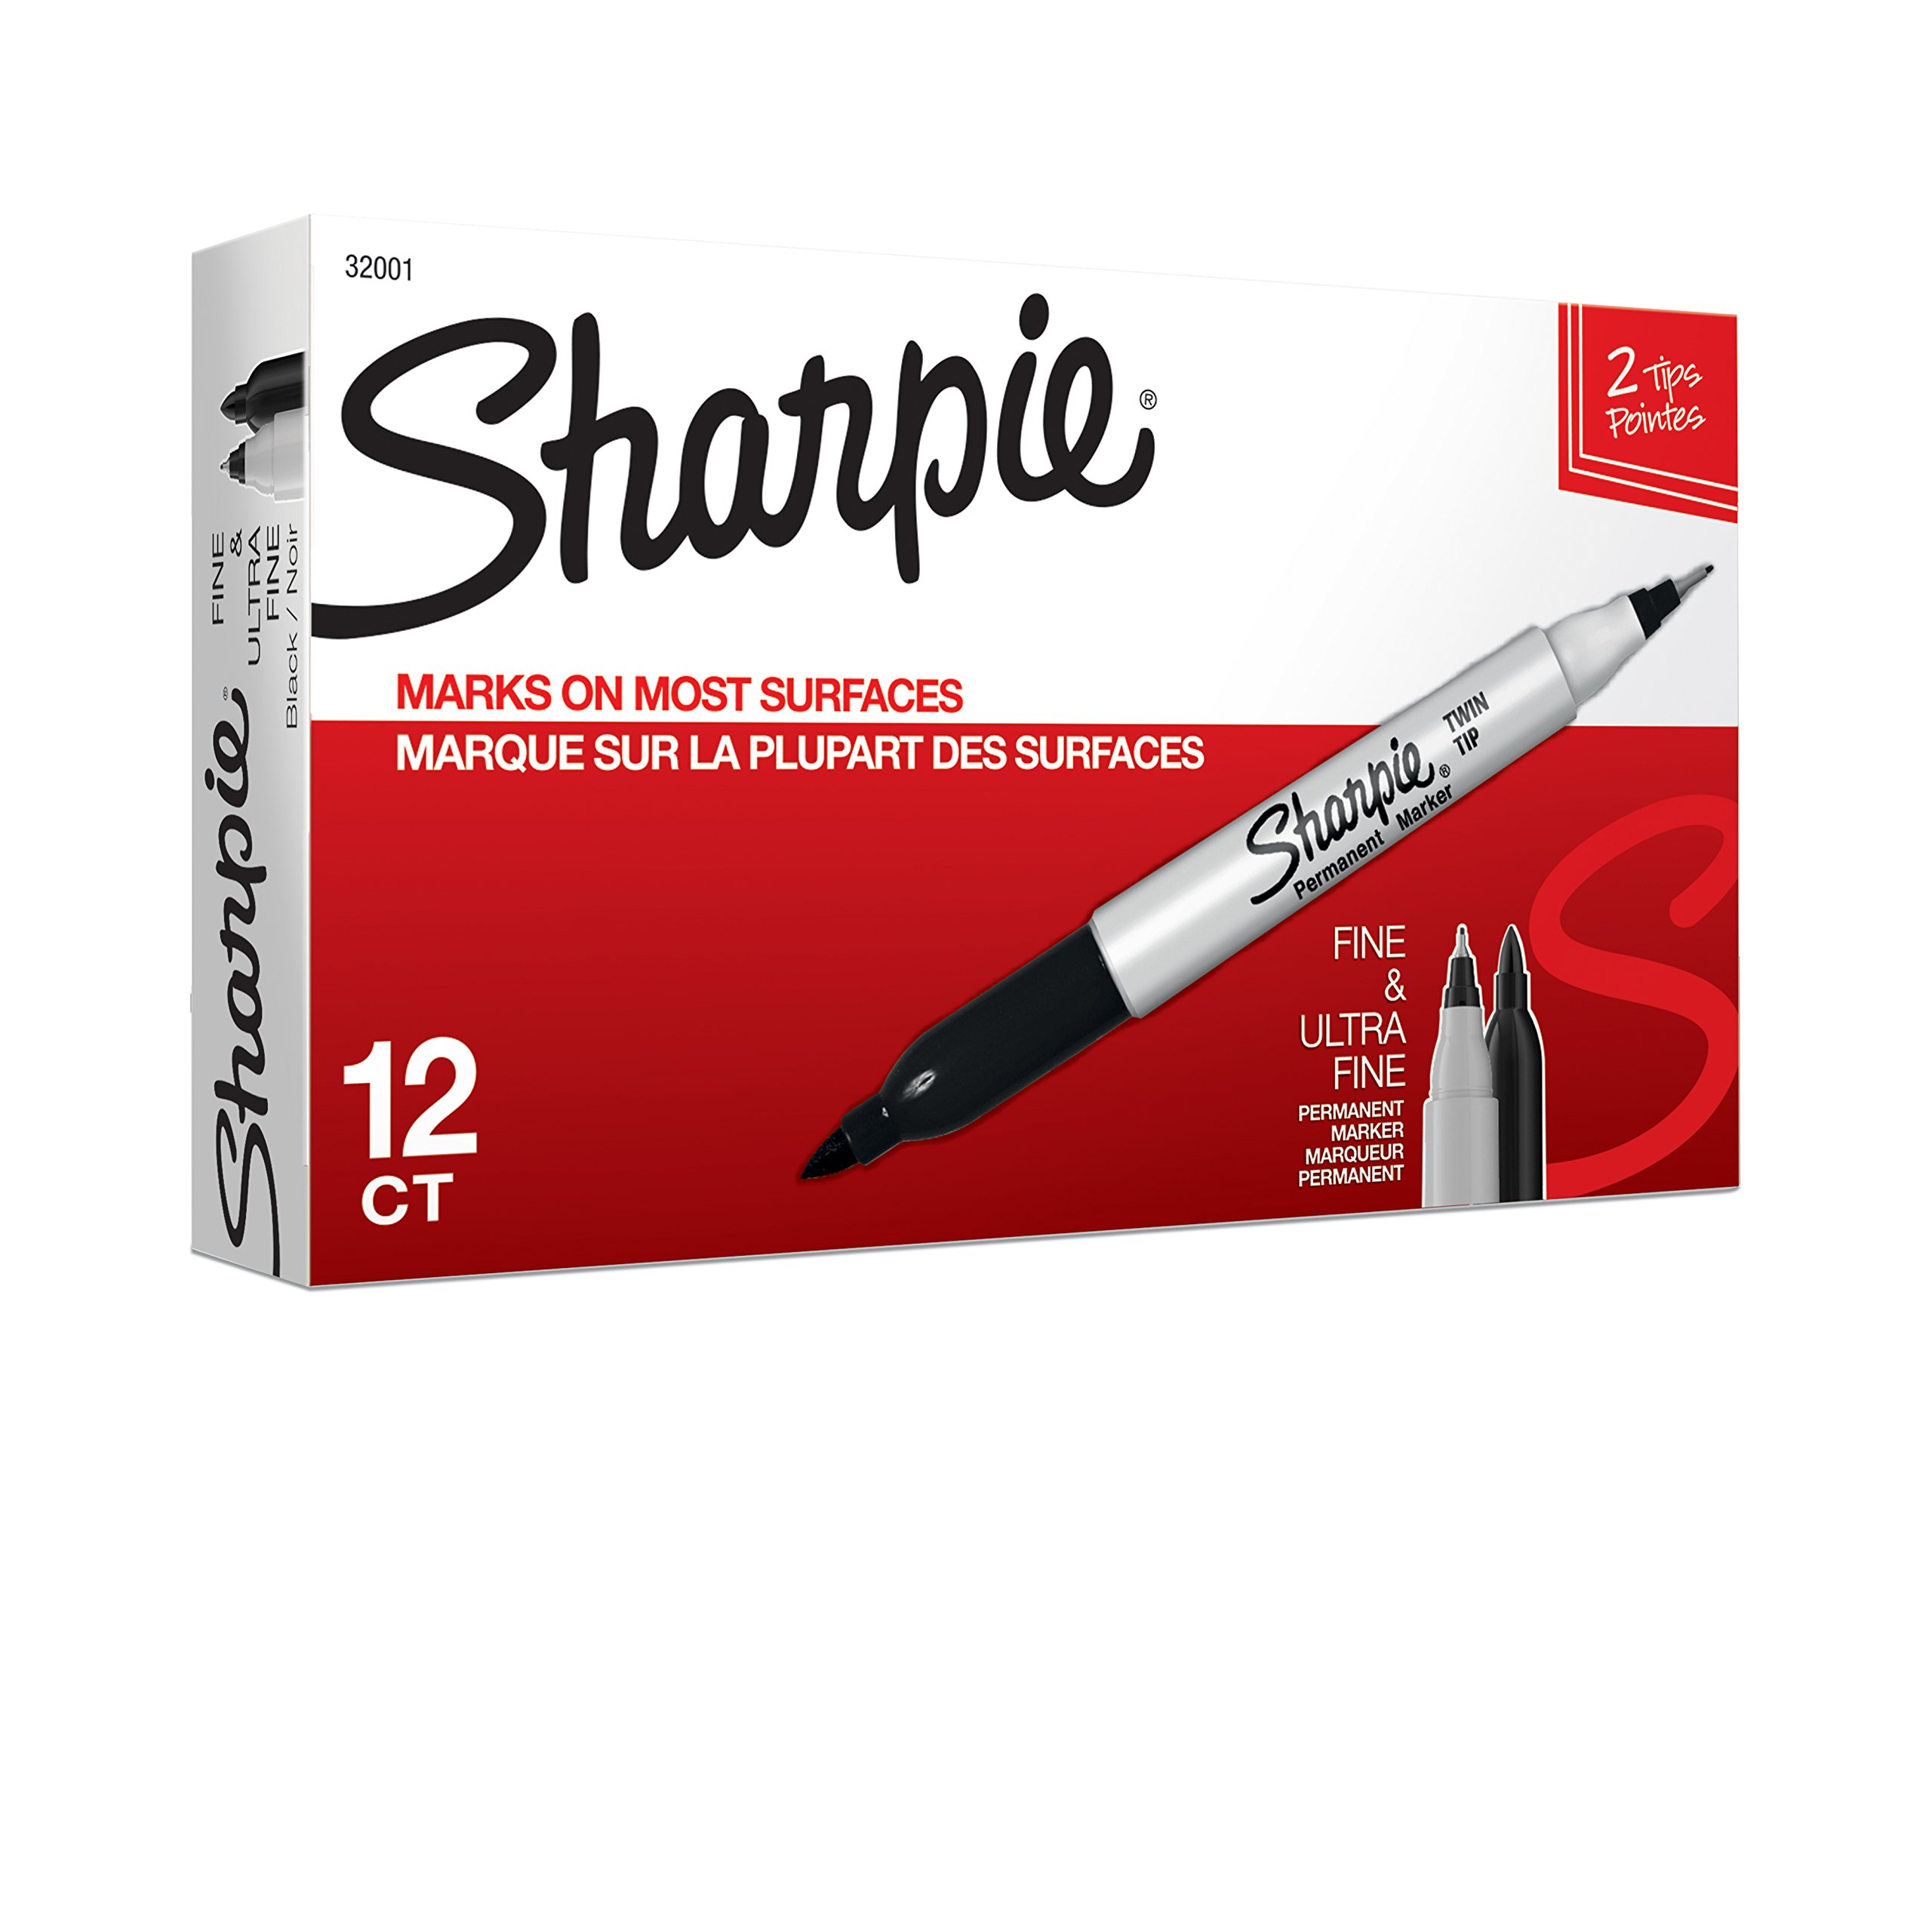 Sharpie Twin Tip Permanent Markers, Fine and Ultra Fine, Black, 12 Count (32001) by SHARPIE